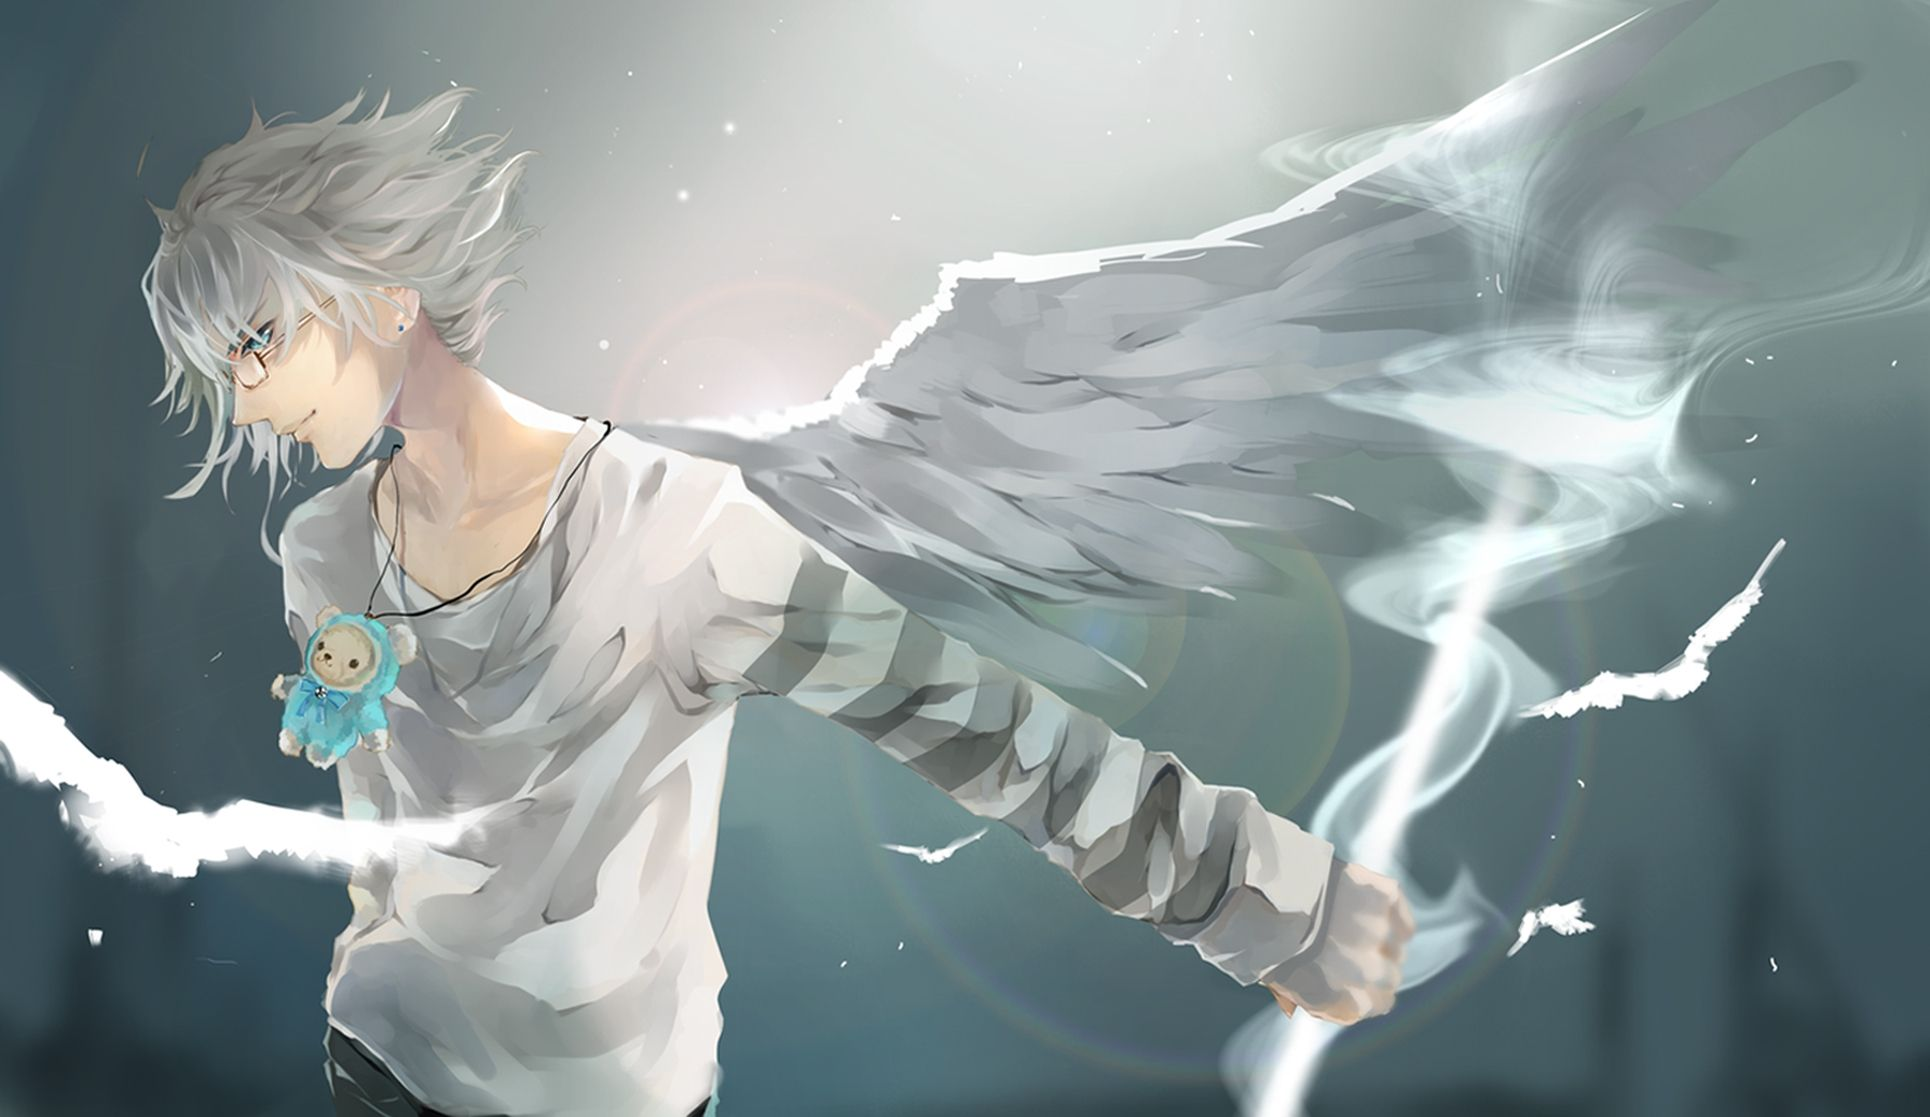 Anime Boy Wings Wallpaper Photo And Images Http Bit Ly 2tvqu8u Anime Wallpaper 1920x1080 Wings Wallpaper Cool Anime Wallpapers